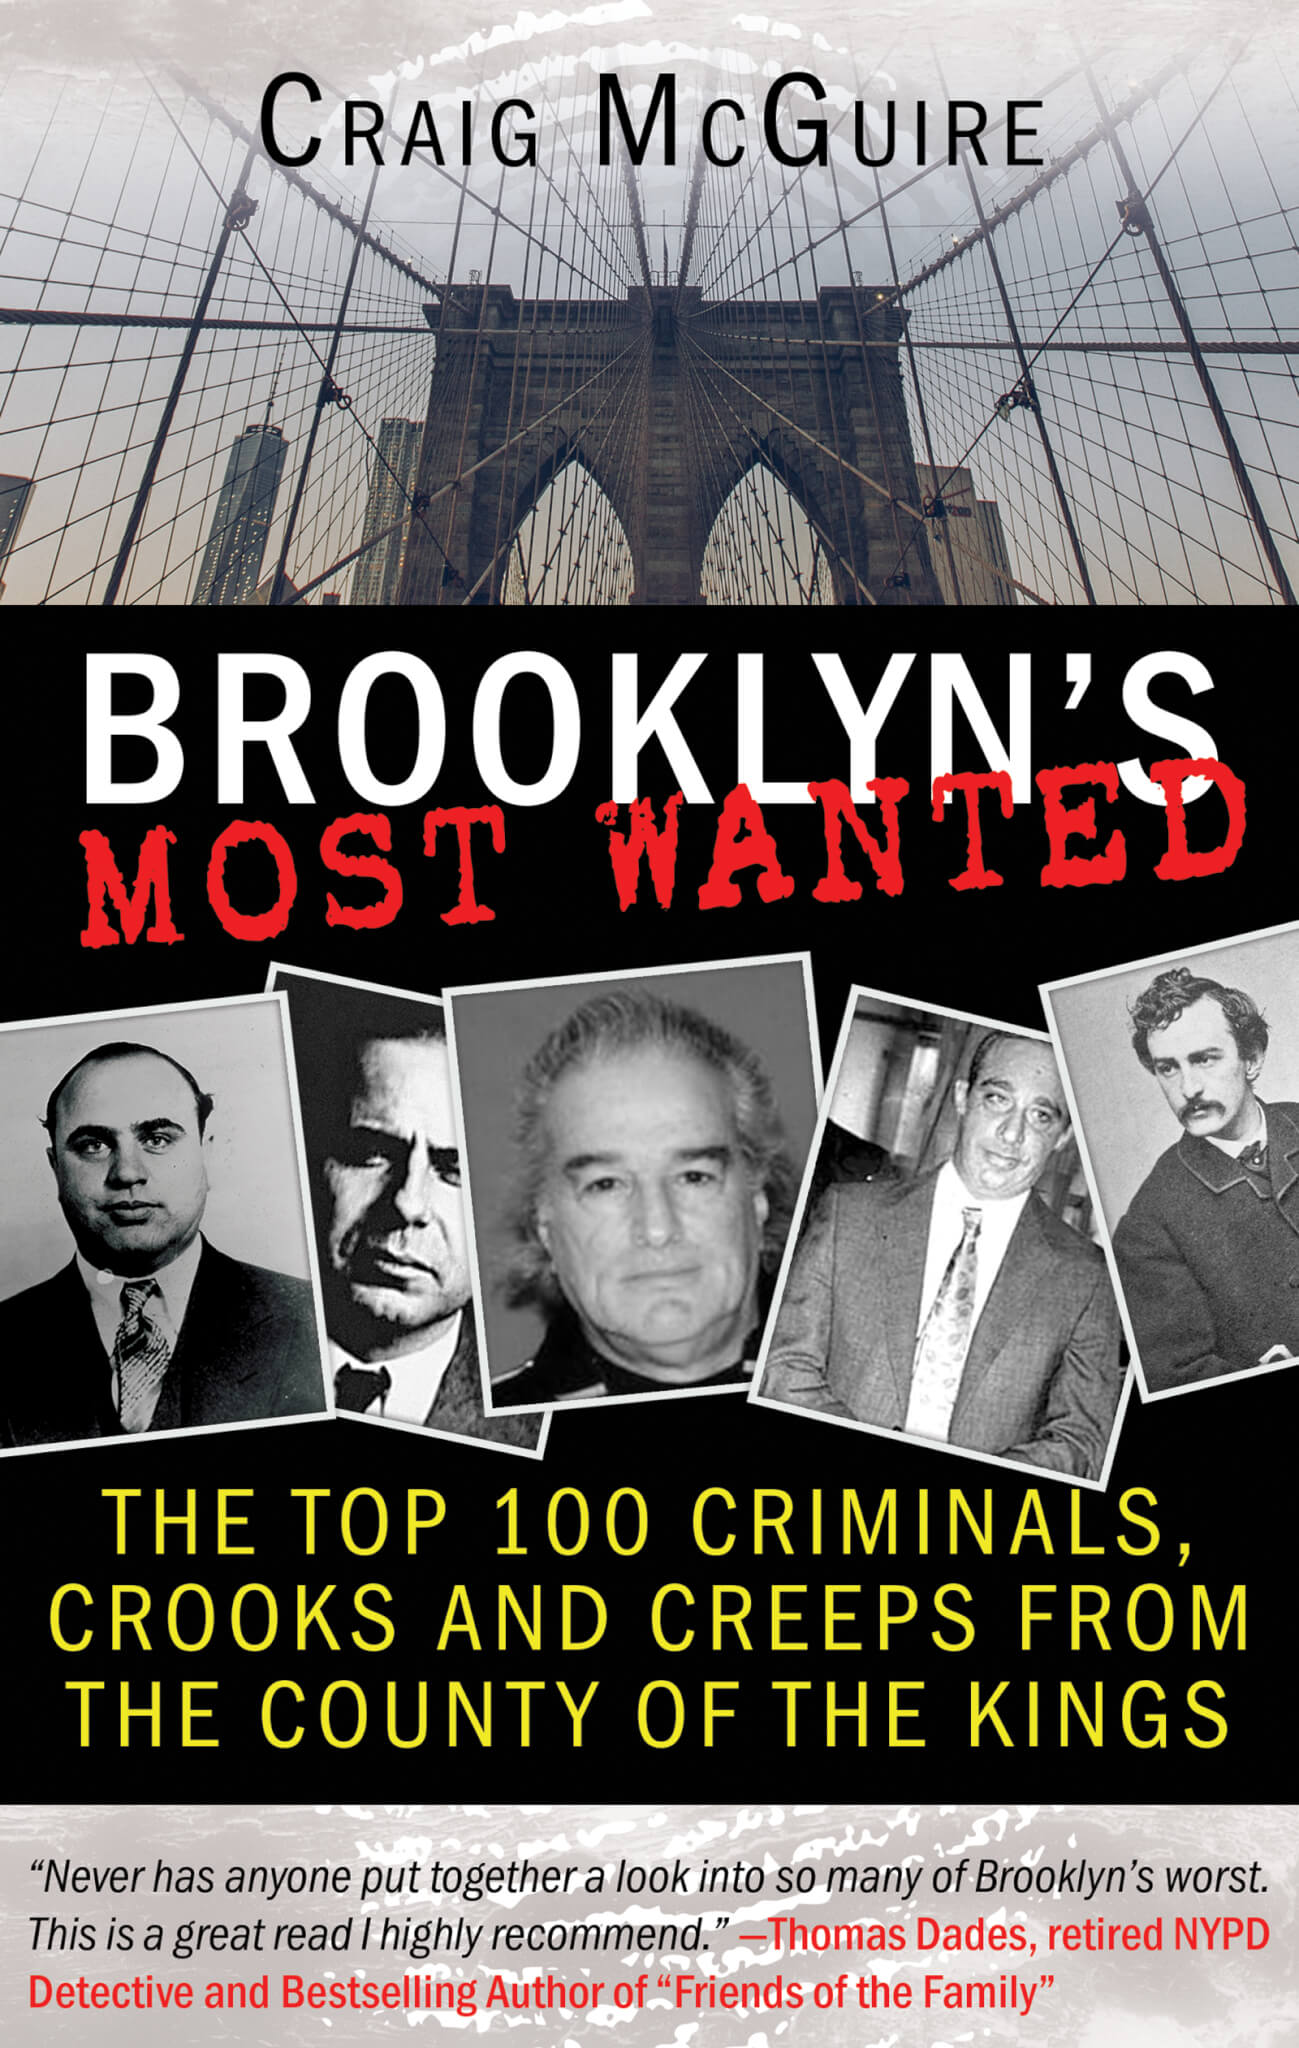 BROOKLYN'S MOST WANTED: Ranking the Top 100 Most Notorious Criminals, Crooks and Creeps from the County of the Kings eBooks Available